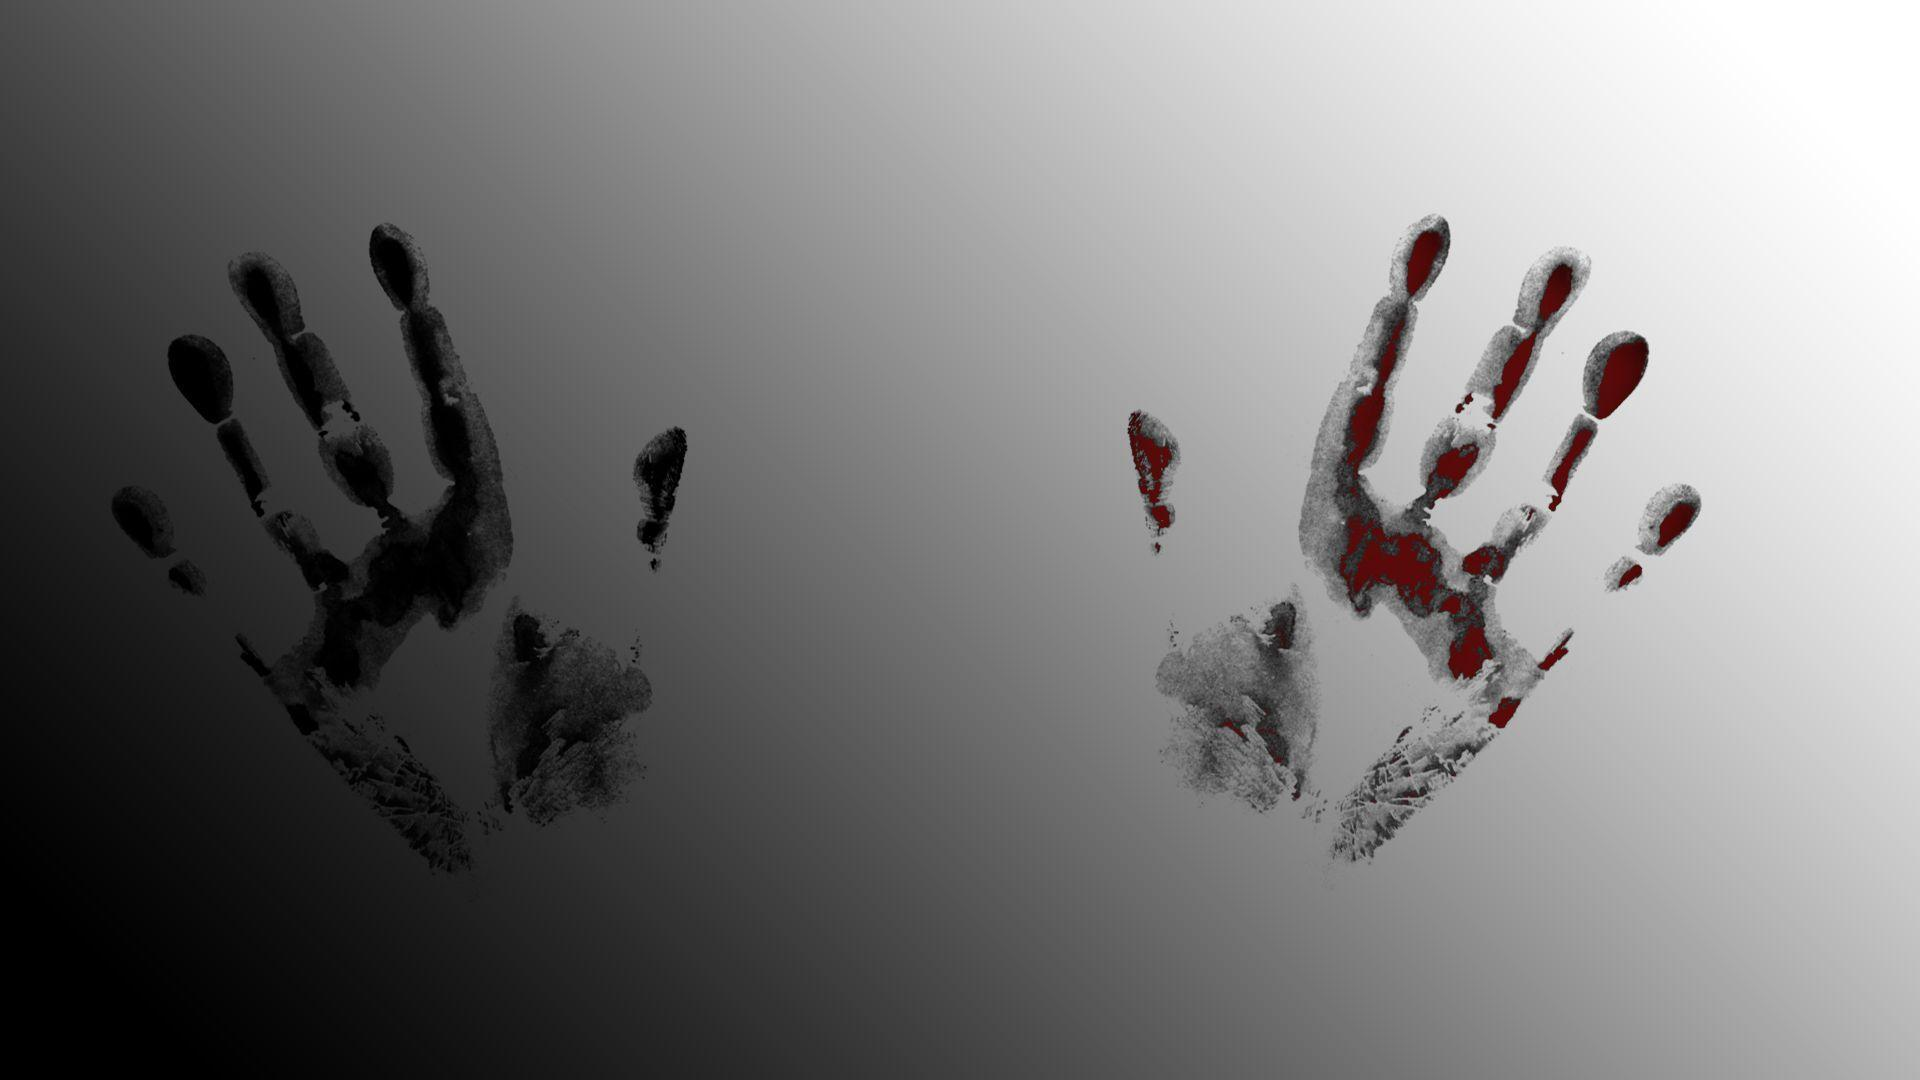 wallpaper 1920x1080 people hands - photo #7